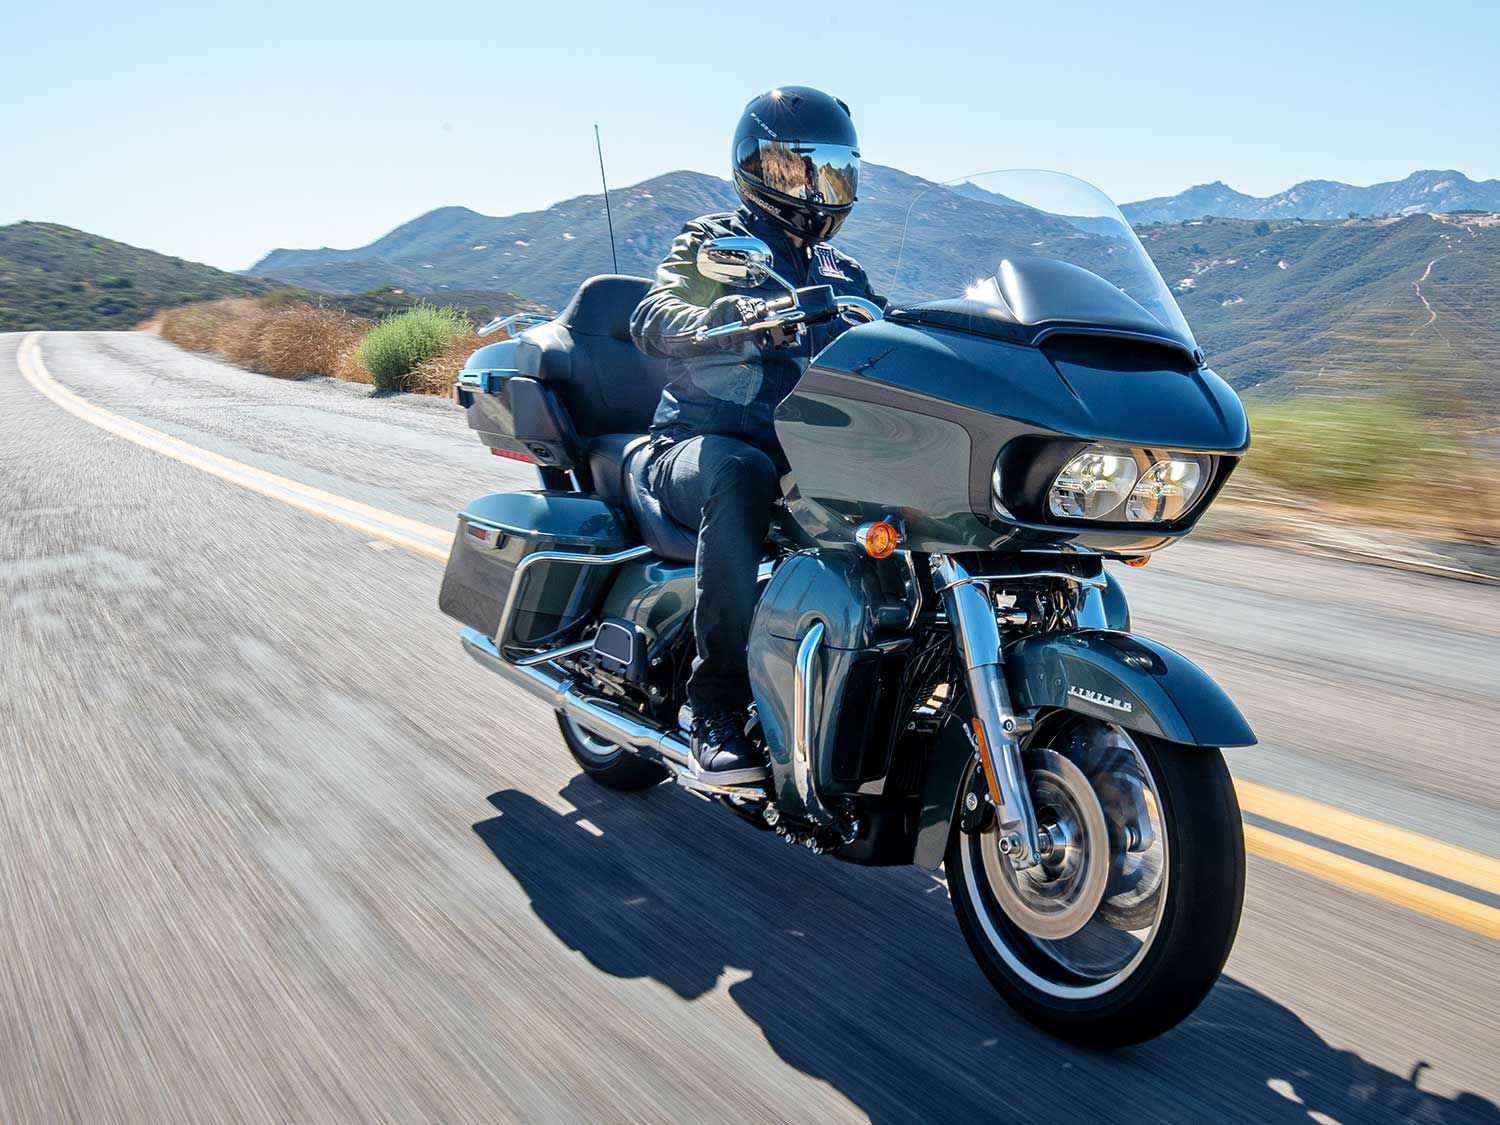 2020 Harley Davidson Road Glide Cvo Limited Review Motorcycle Cruiser